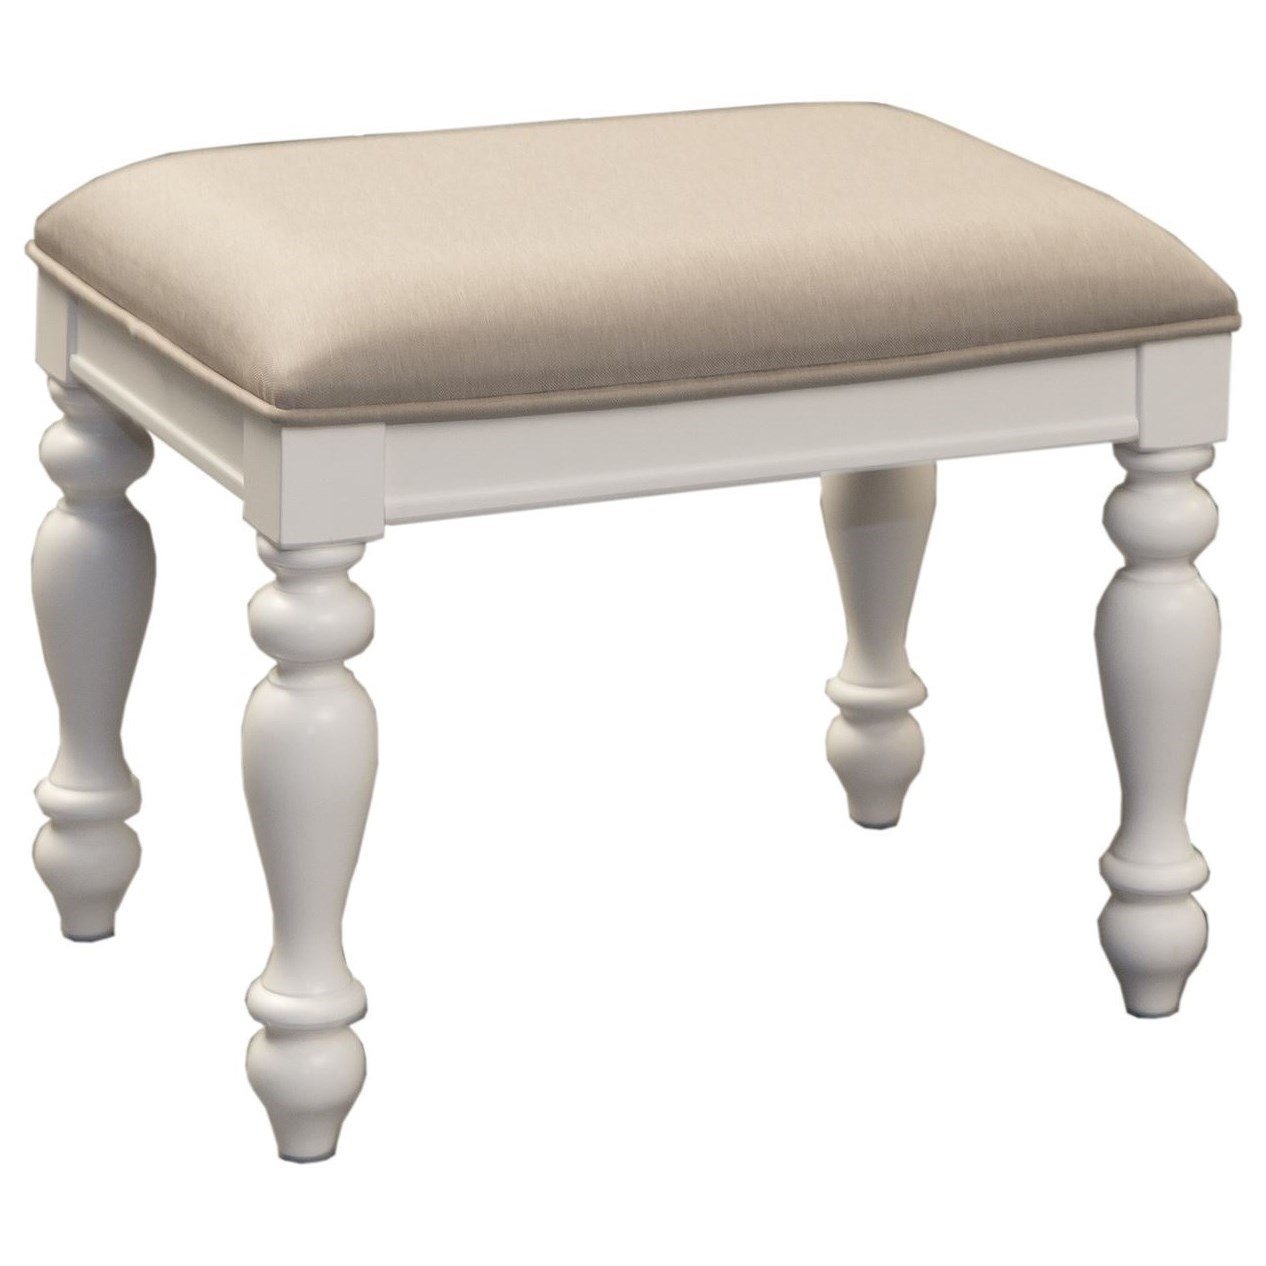 Vanity Chairs Liberty Furniture Summer House 607 Br99 Cottage Style Vanity Stool